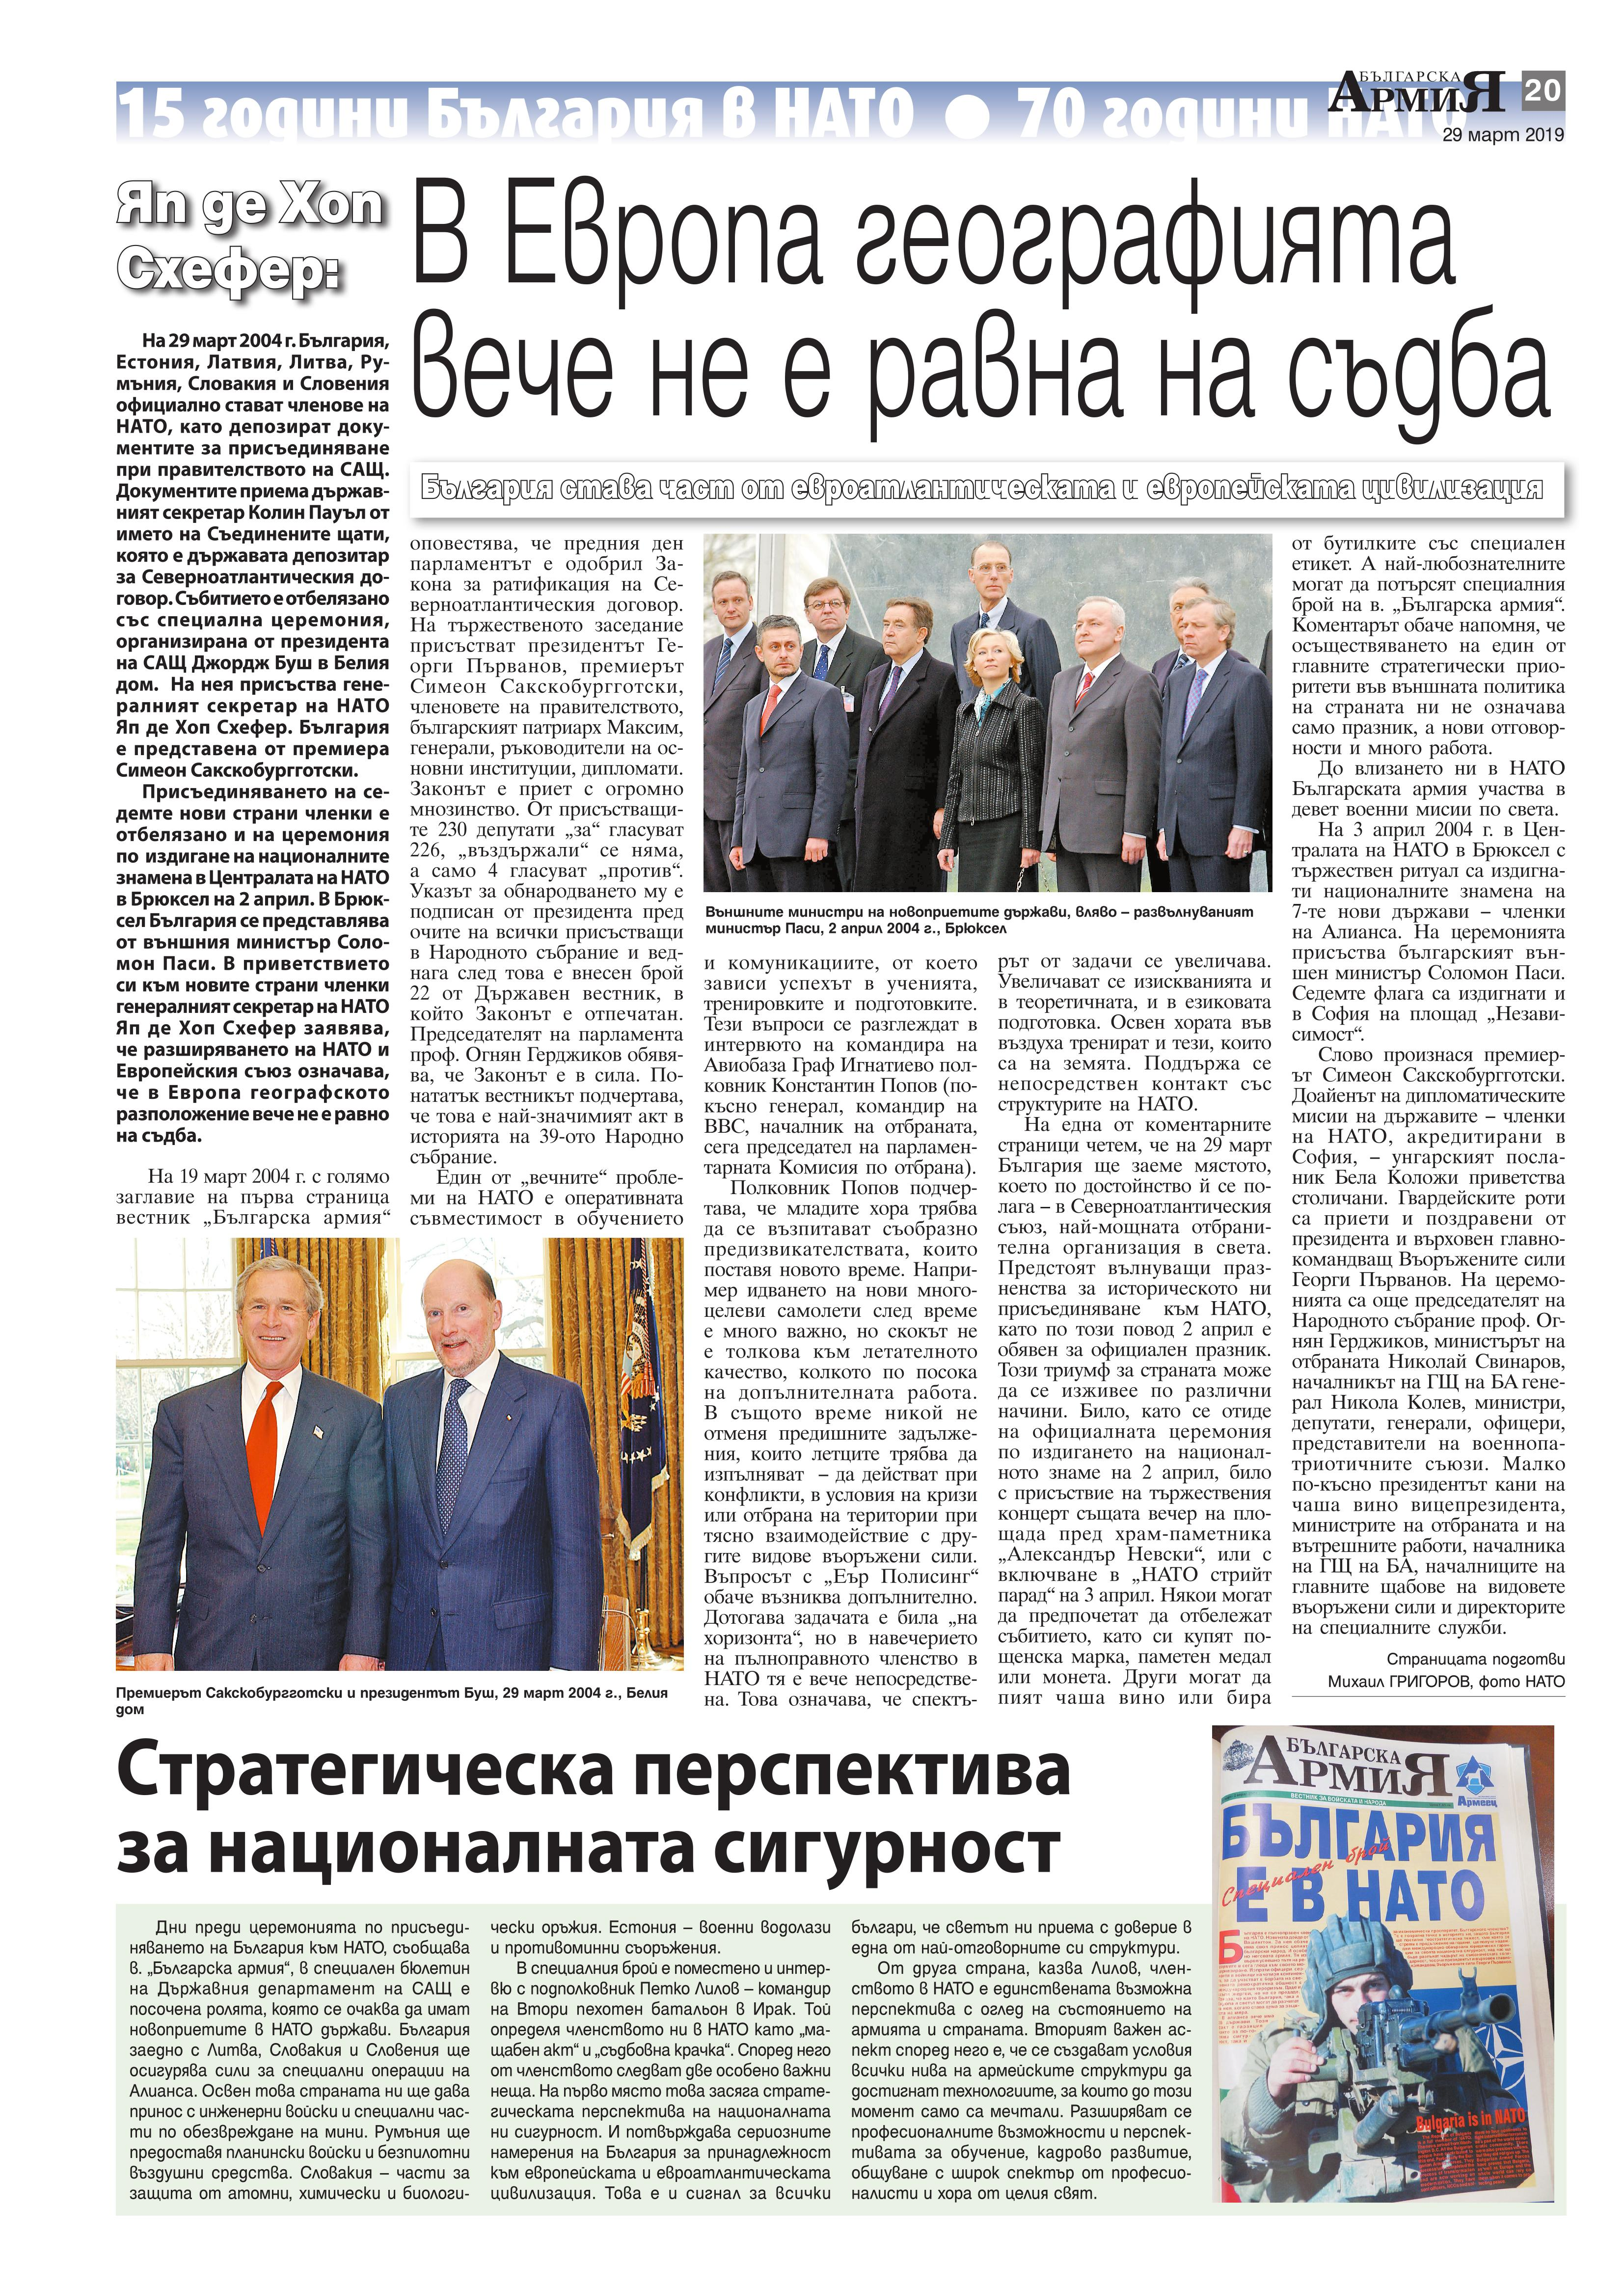 https://www.armymedia.bg/wp-content/uploads/2015/06/20.page1_-89.jpg